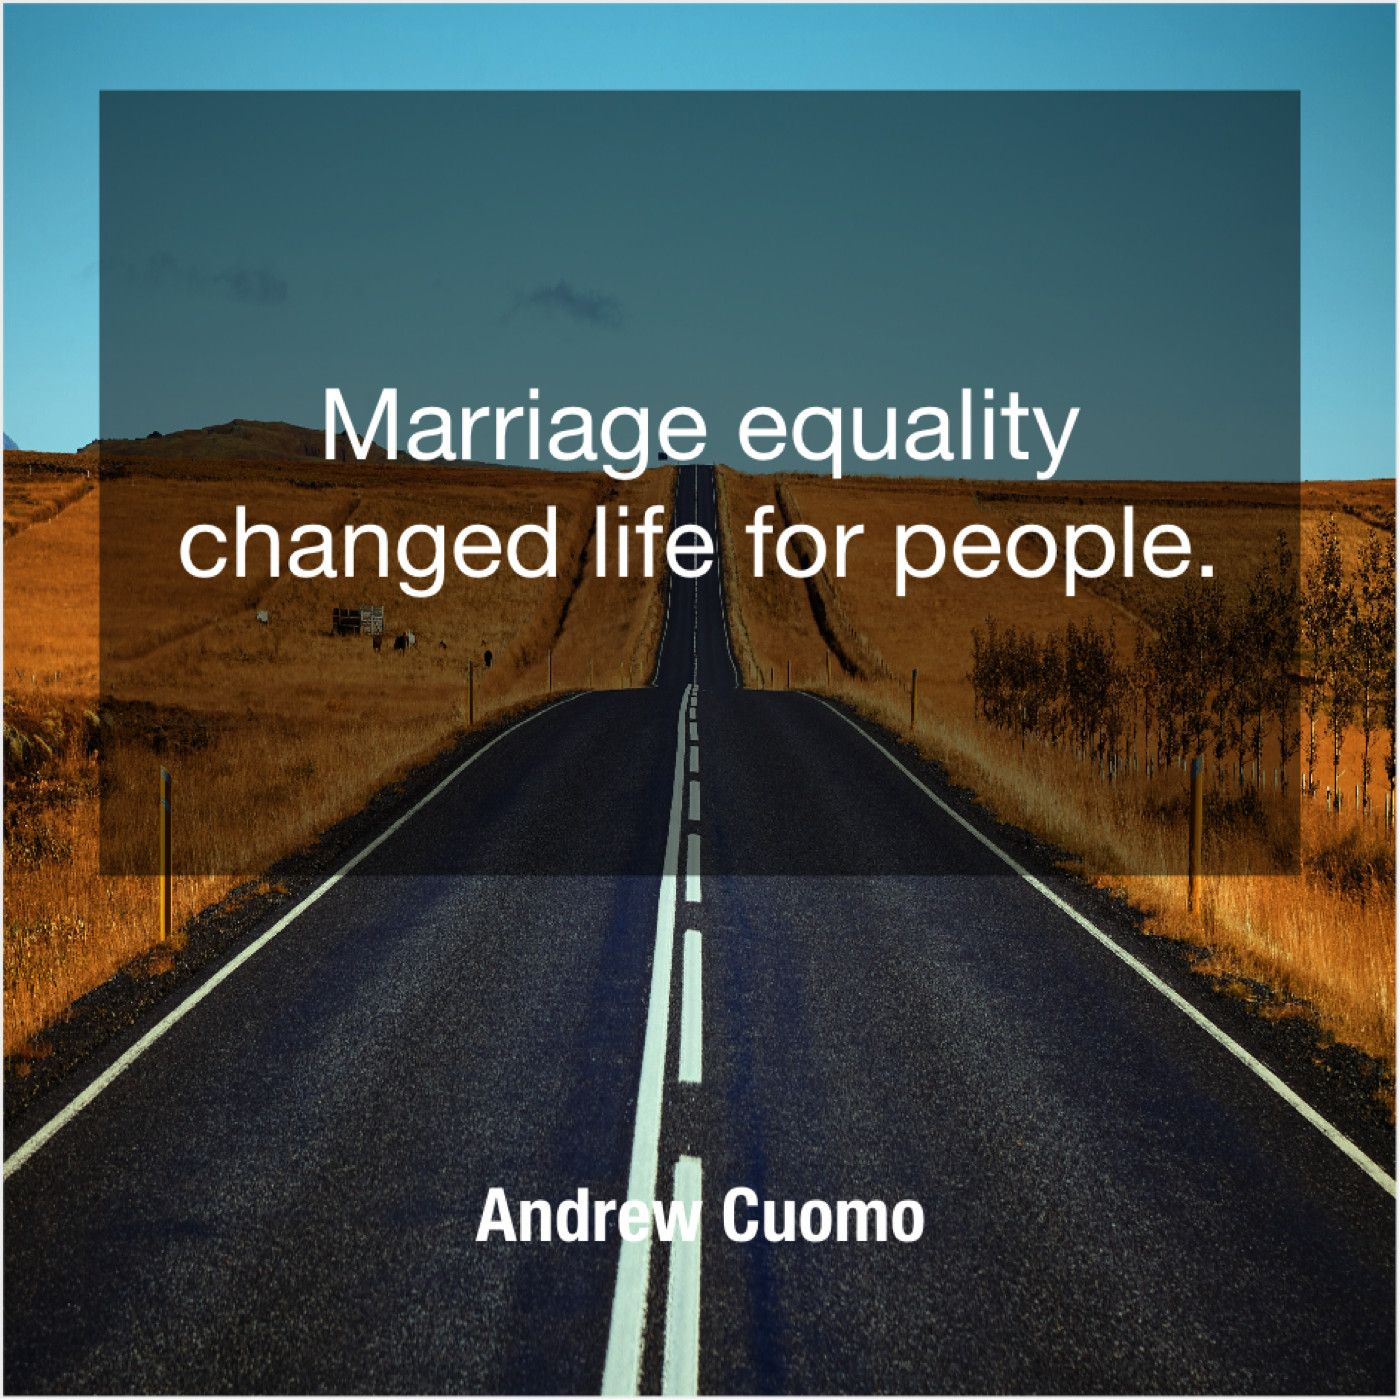 Andrew Cuomo Marriage Equality Changed Life For Marriage Equality Life Changes Andrew Cuomo